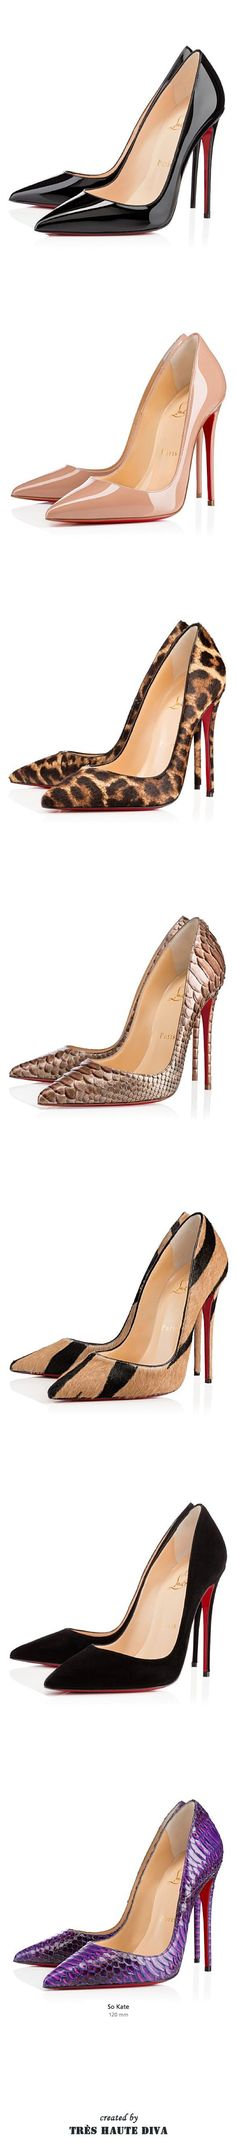 Christian Louboutin So Kate Fall 2014 THD www.louboutinboots.at.nr Fashion high heels, fashion girls shoes and men shoes ,just here with $129 best price